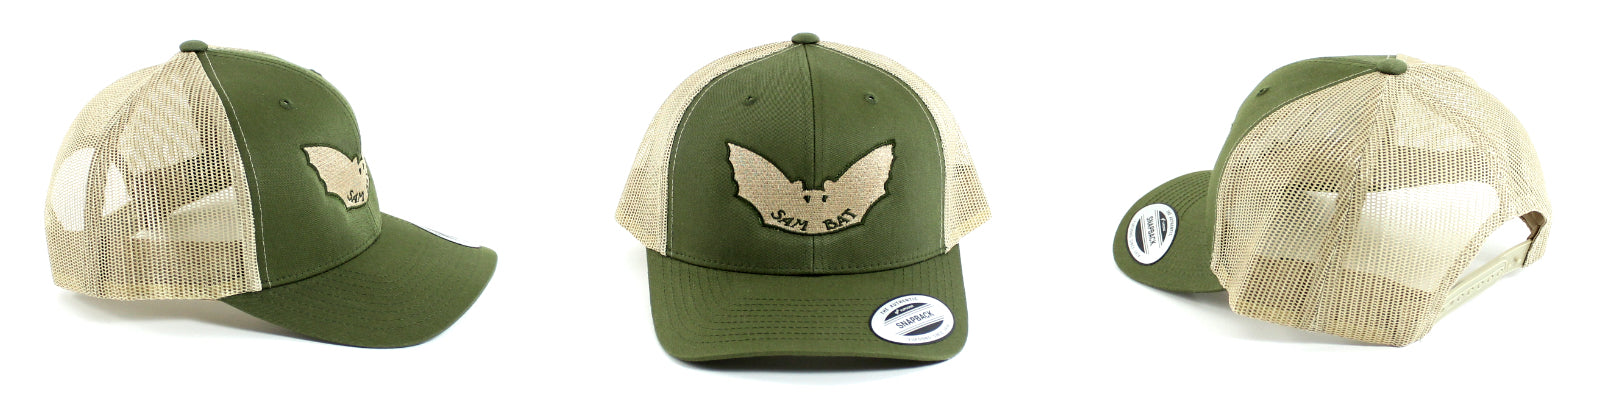 Sam Bat Retro Trucker - Moss/Khaki